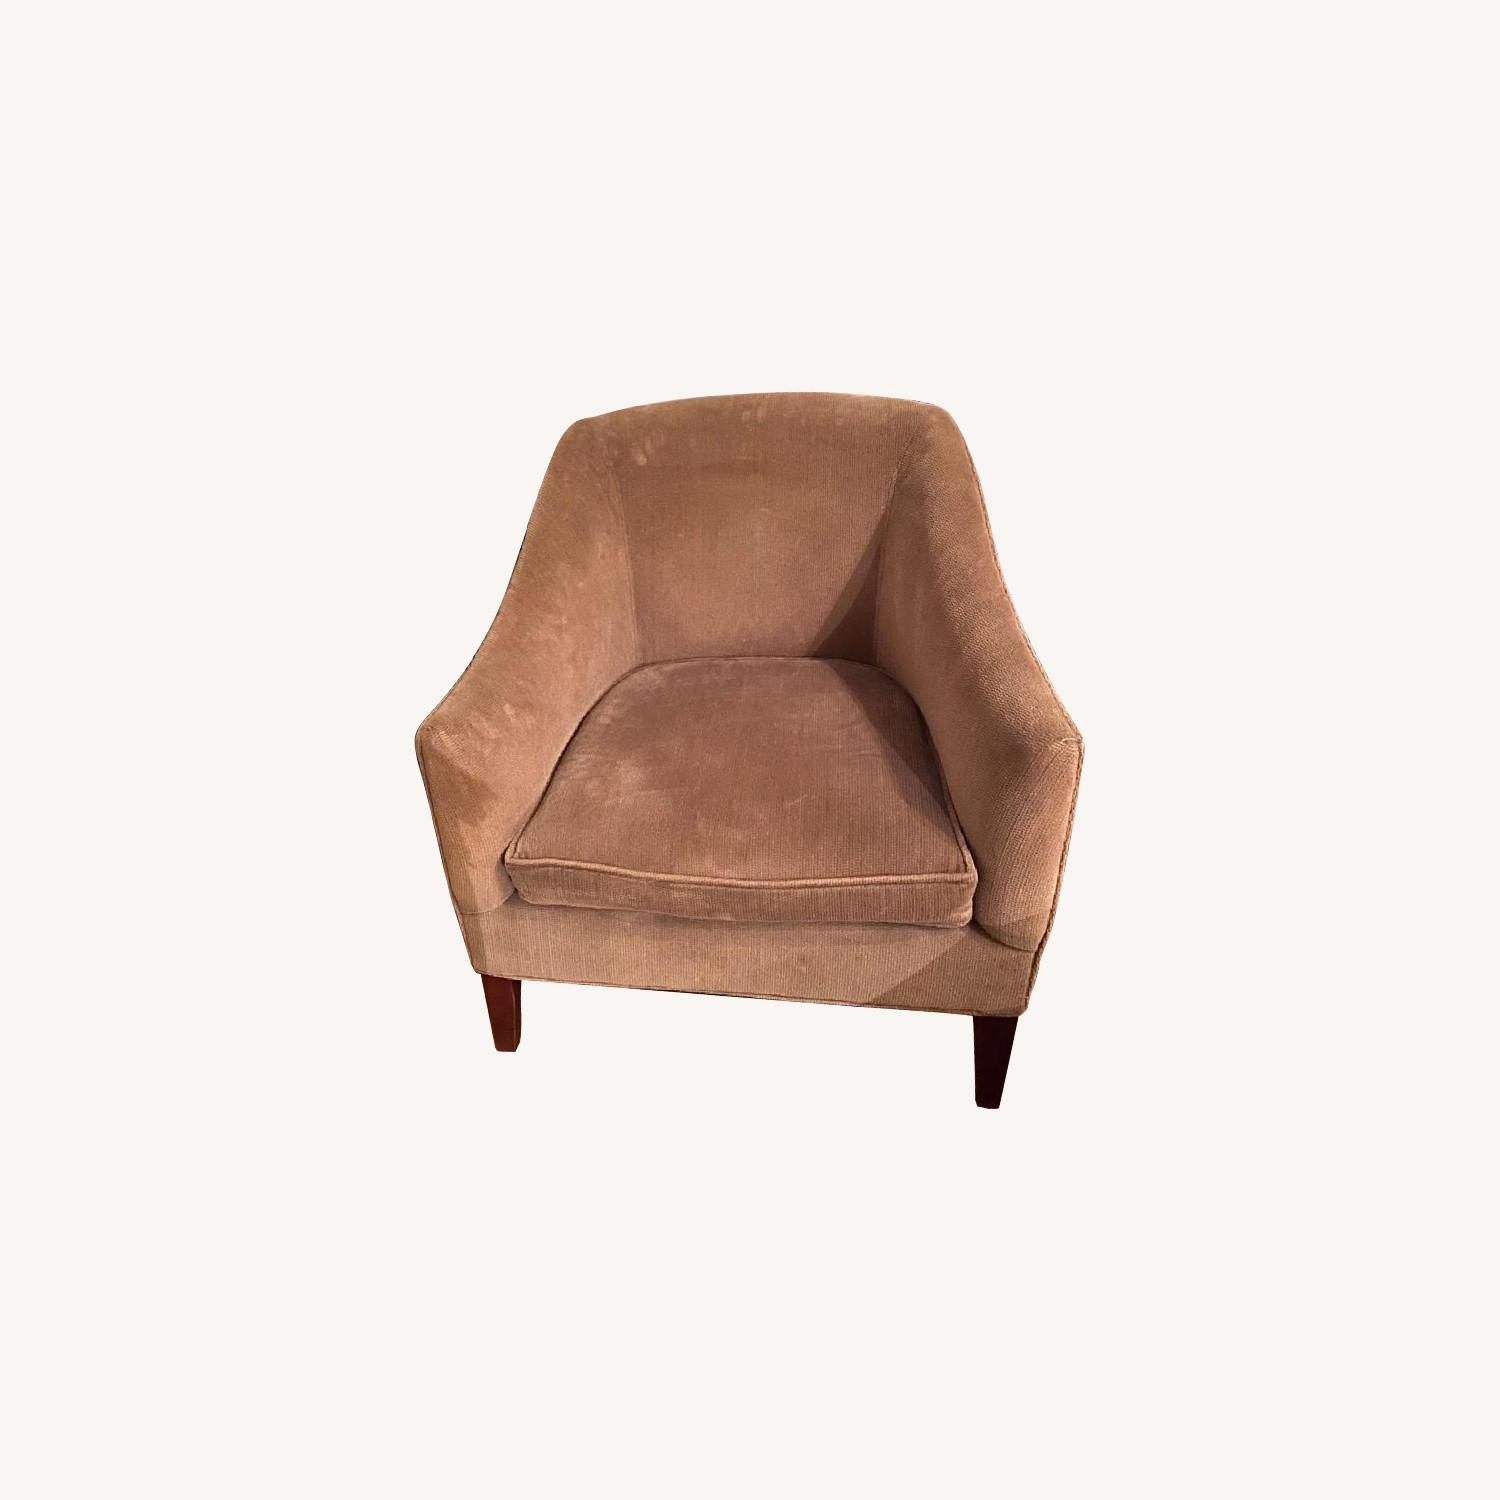 Mitchell Gold + Bob Williams Accent Chair - image-0